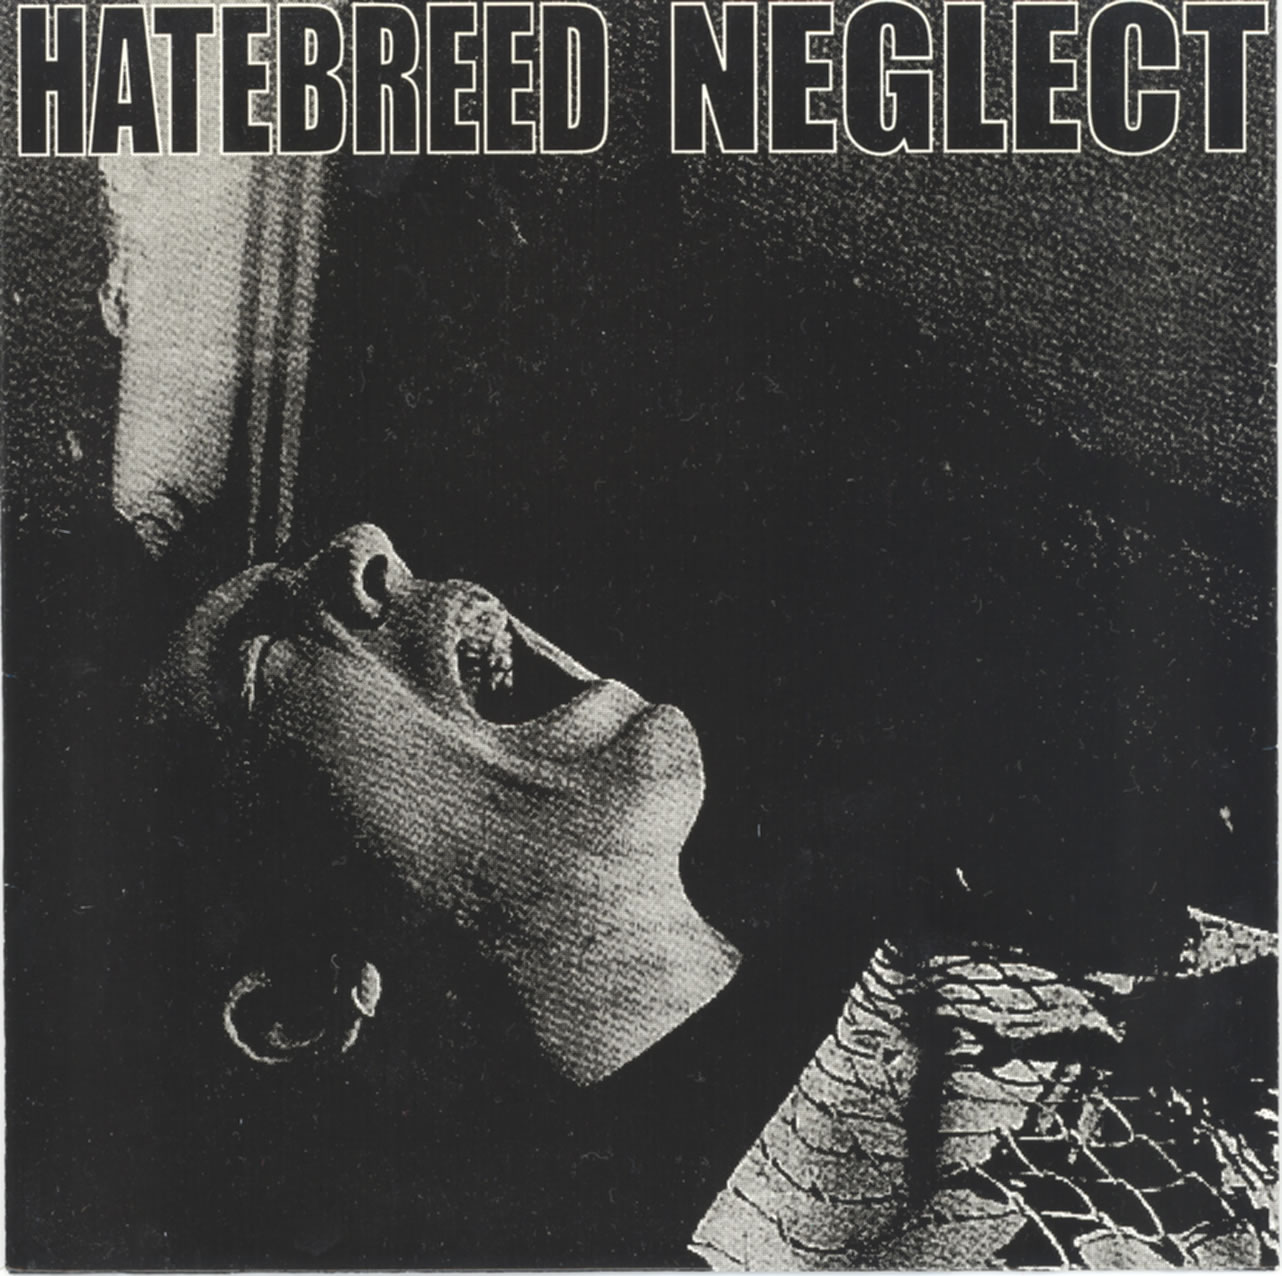 Download torrent Hatebreed / Neglect - Hatebreed / Neglect (1995)